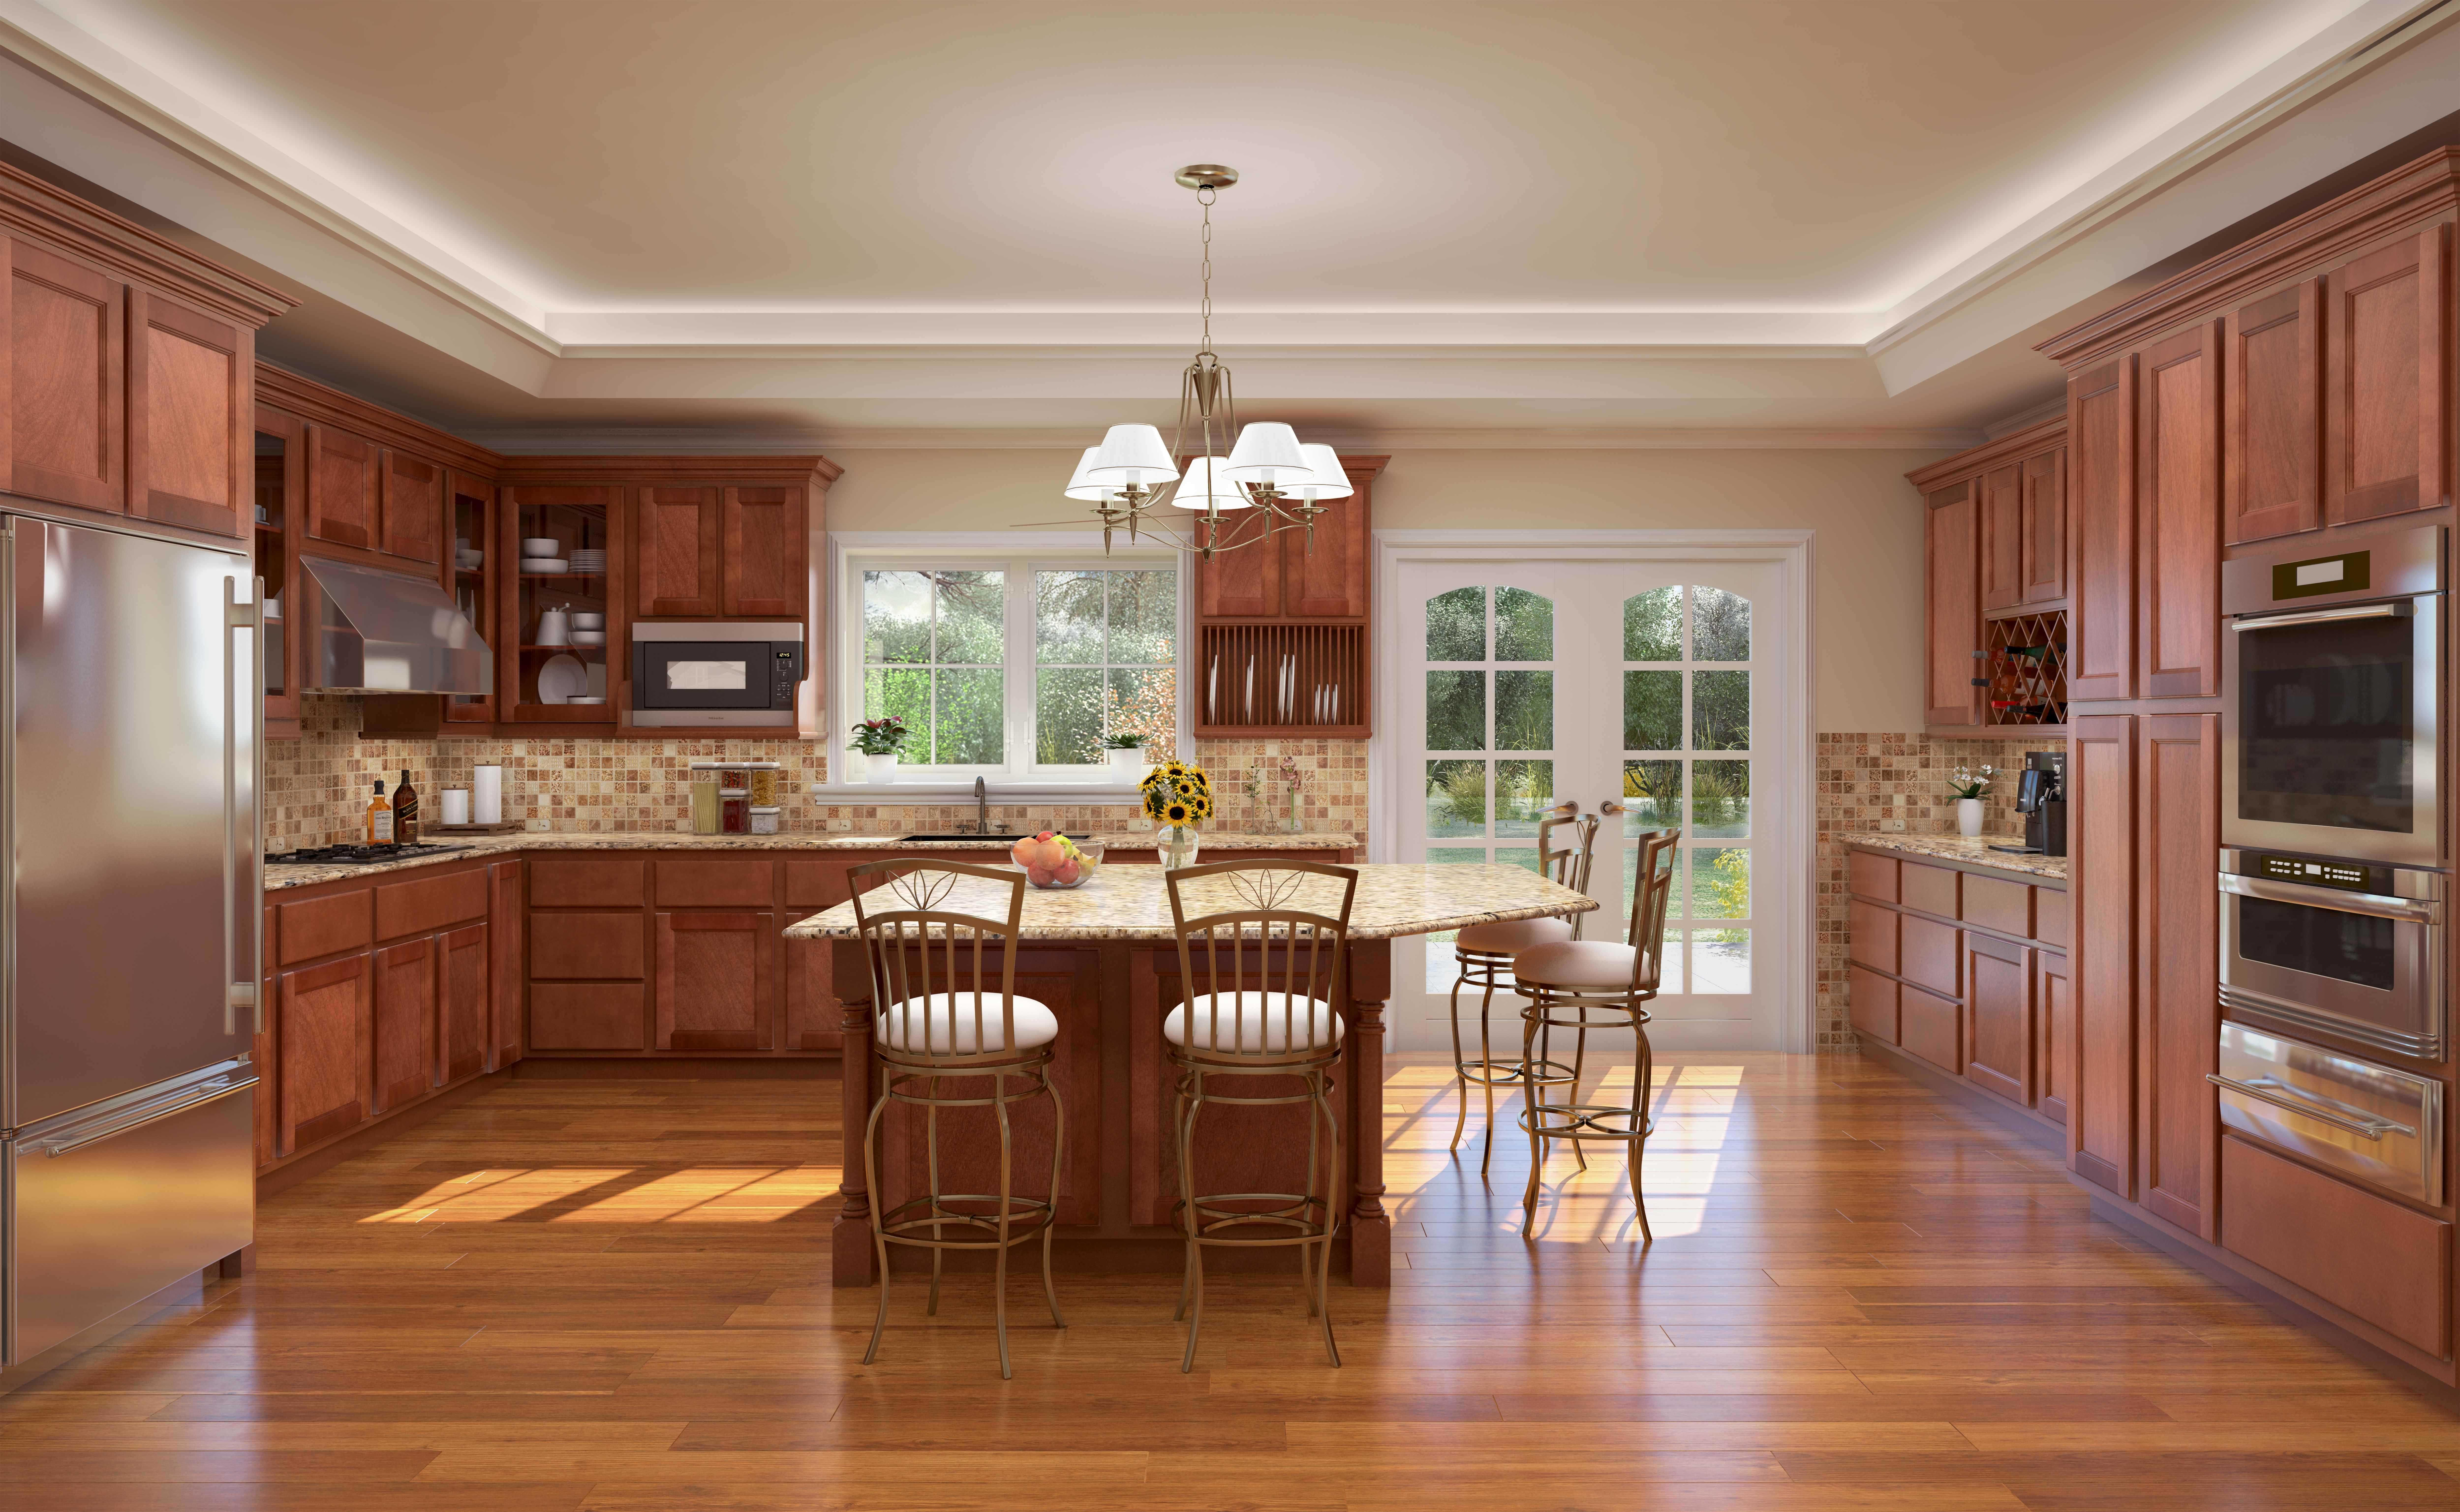 Pin By Diane Pereira On Cubitac Cabinetry Stock Kitchen Cabinets Kitchen Furnishings Best Kitchen Designs